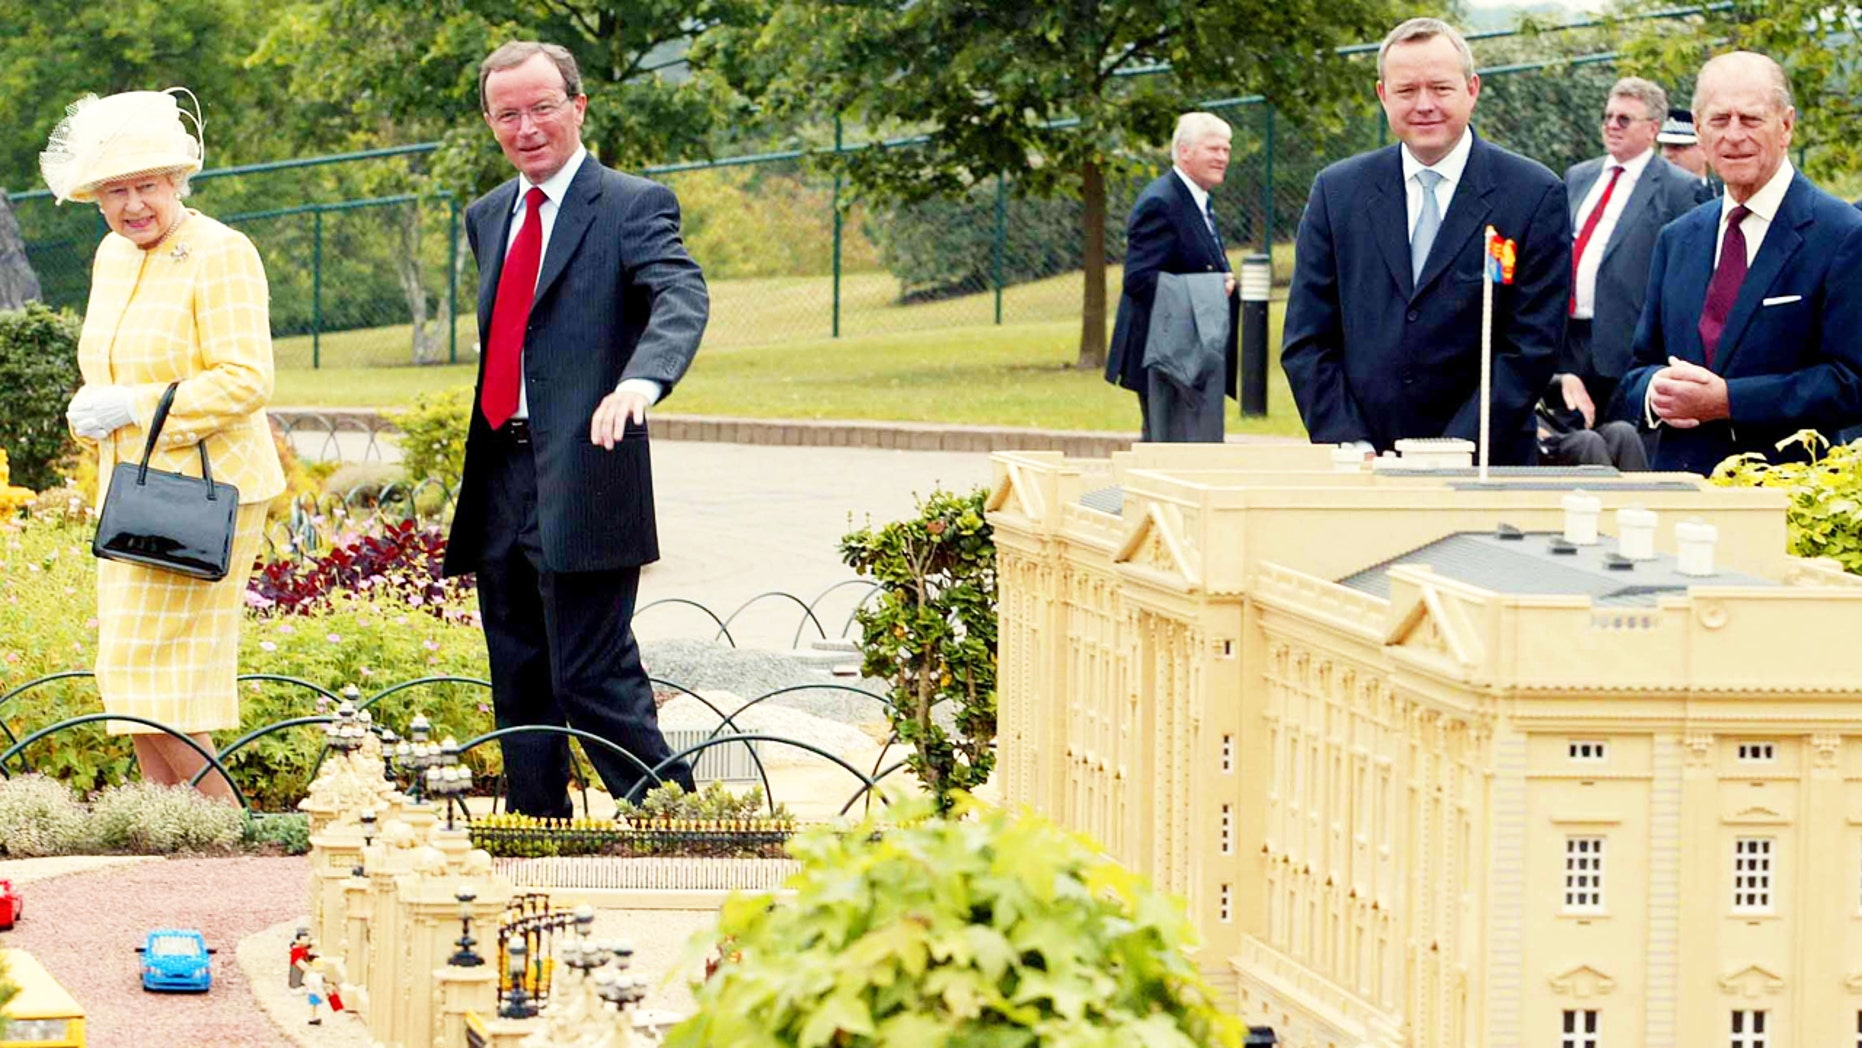 Queen Elizabeth (L) and the Duke of Edinburgh look at a miniature version of Buckingham Palace during a visit to Legoland in Windsor, U.K.